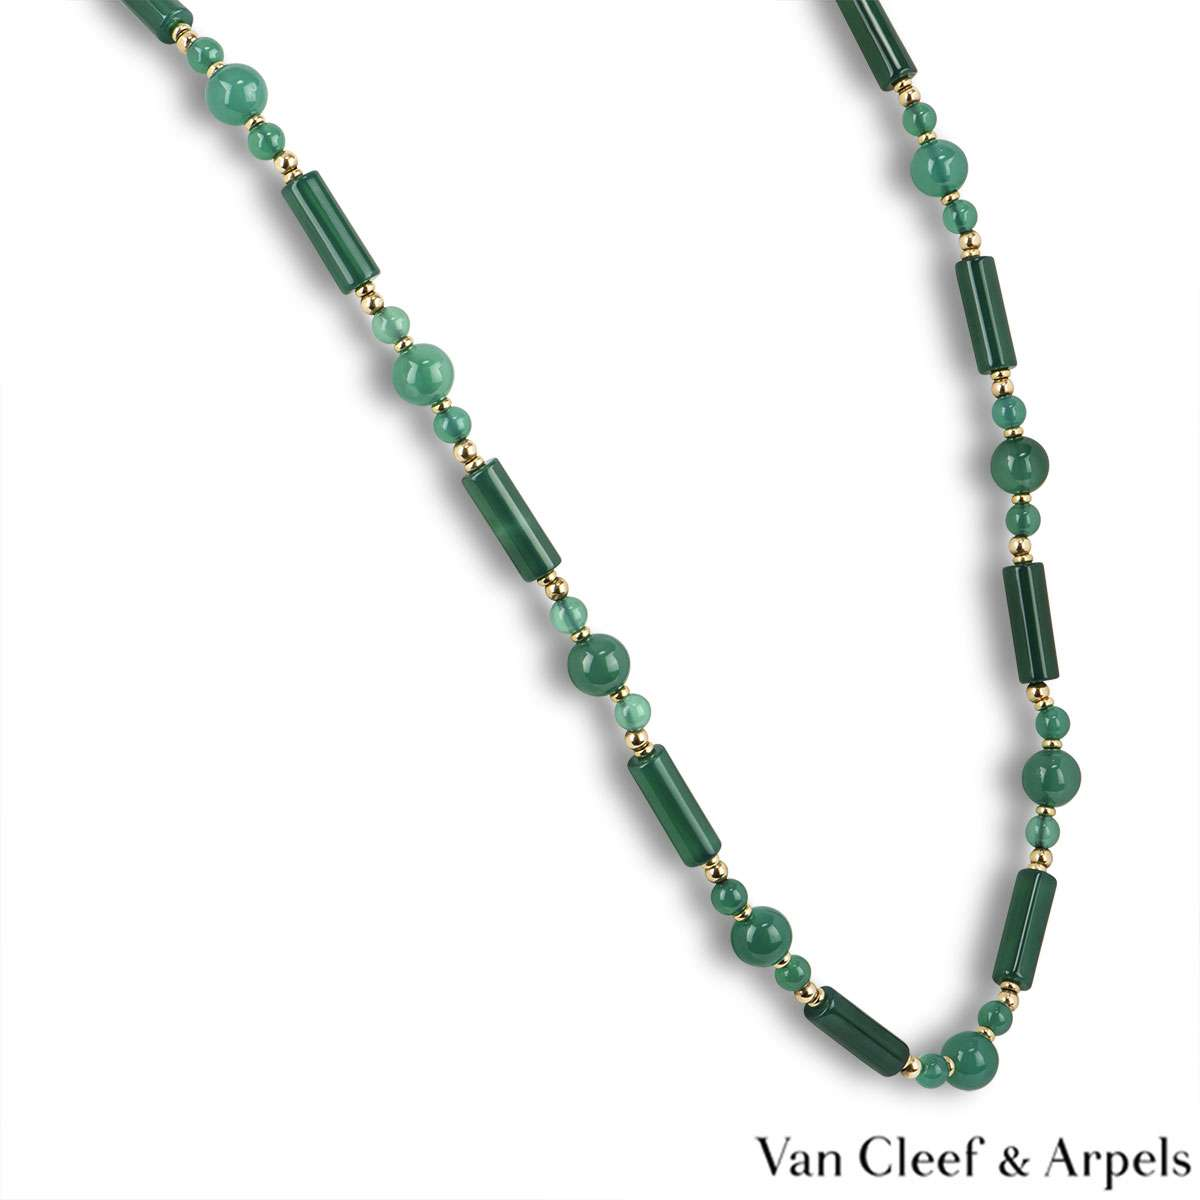 Van Cleef & Arpels Yellow Gold Chalcedony Beaded Necklace